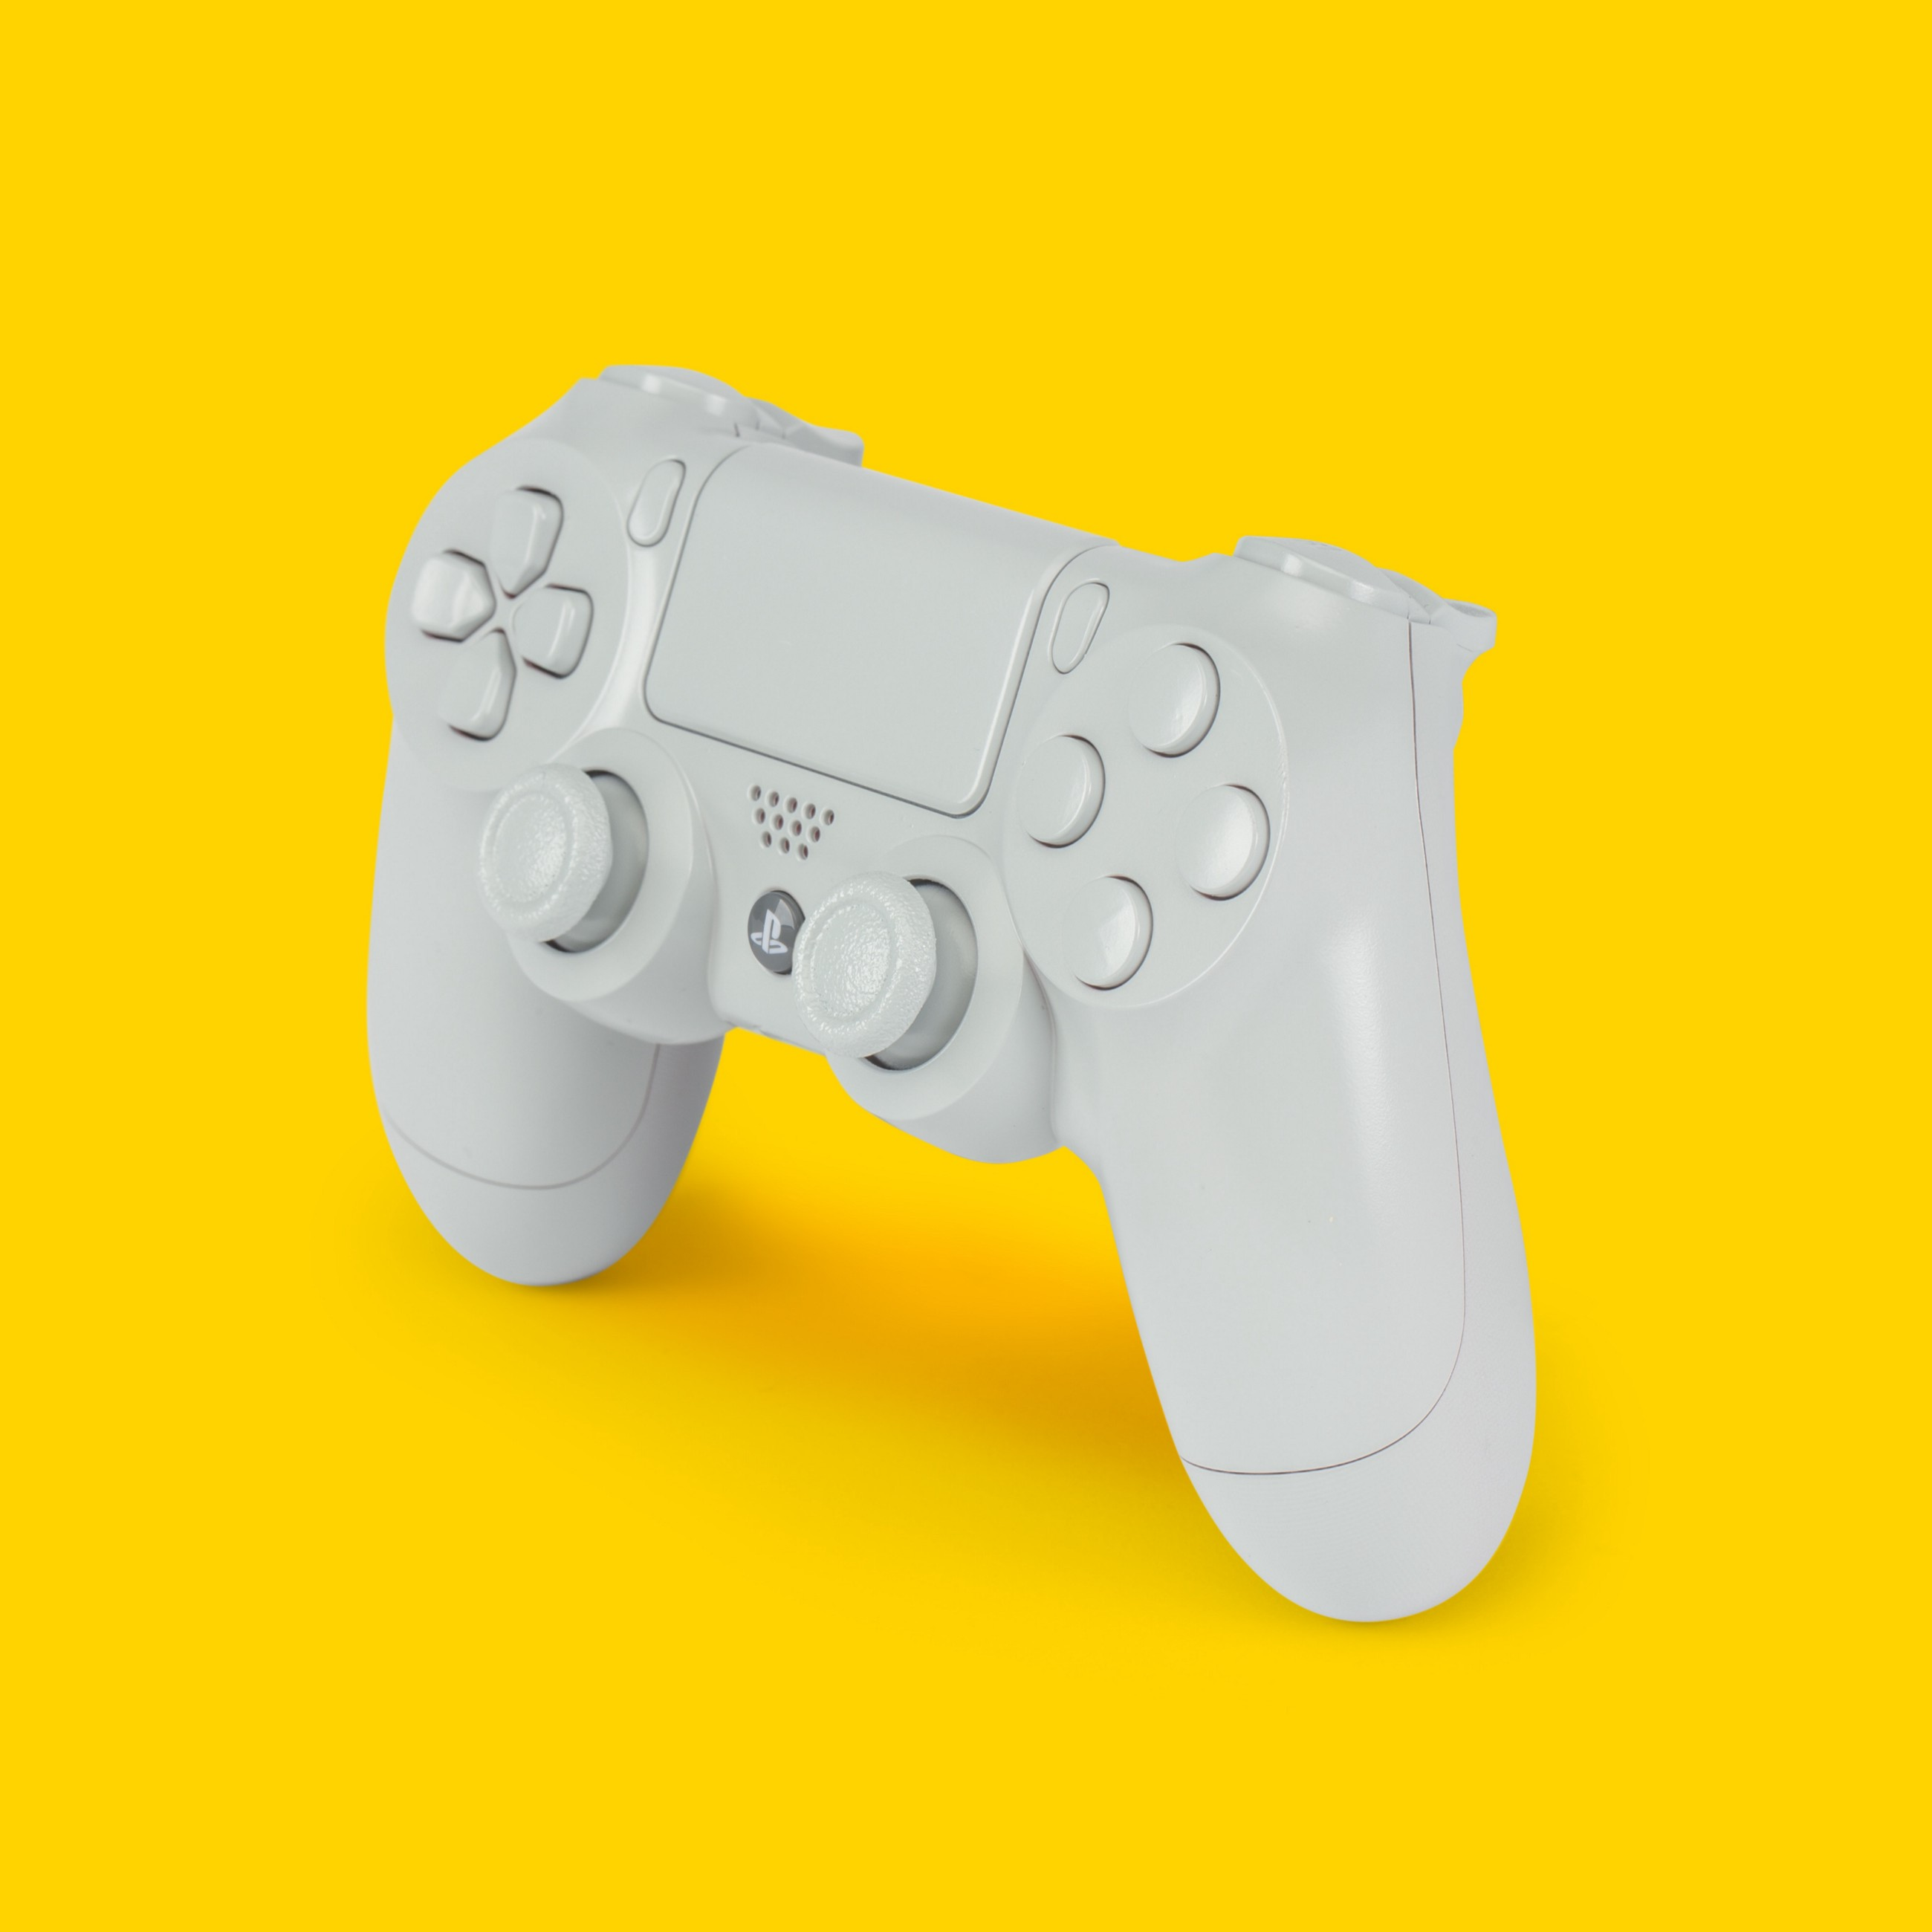 /why-google-has-an-edge-over-cloud-gaming-56886ee0440f feature image